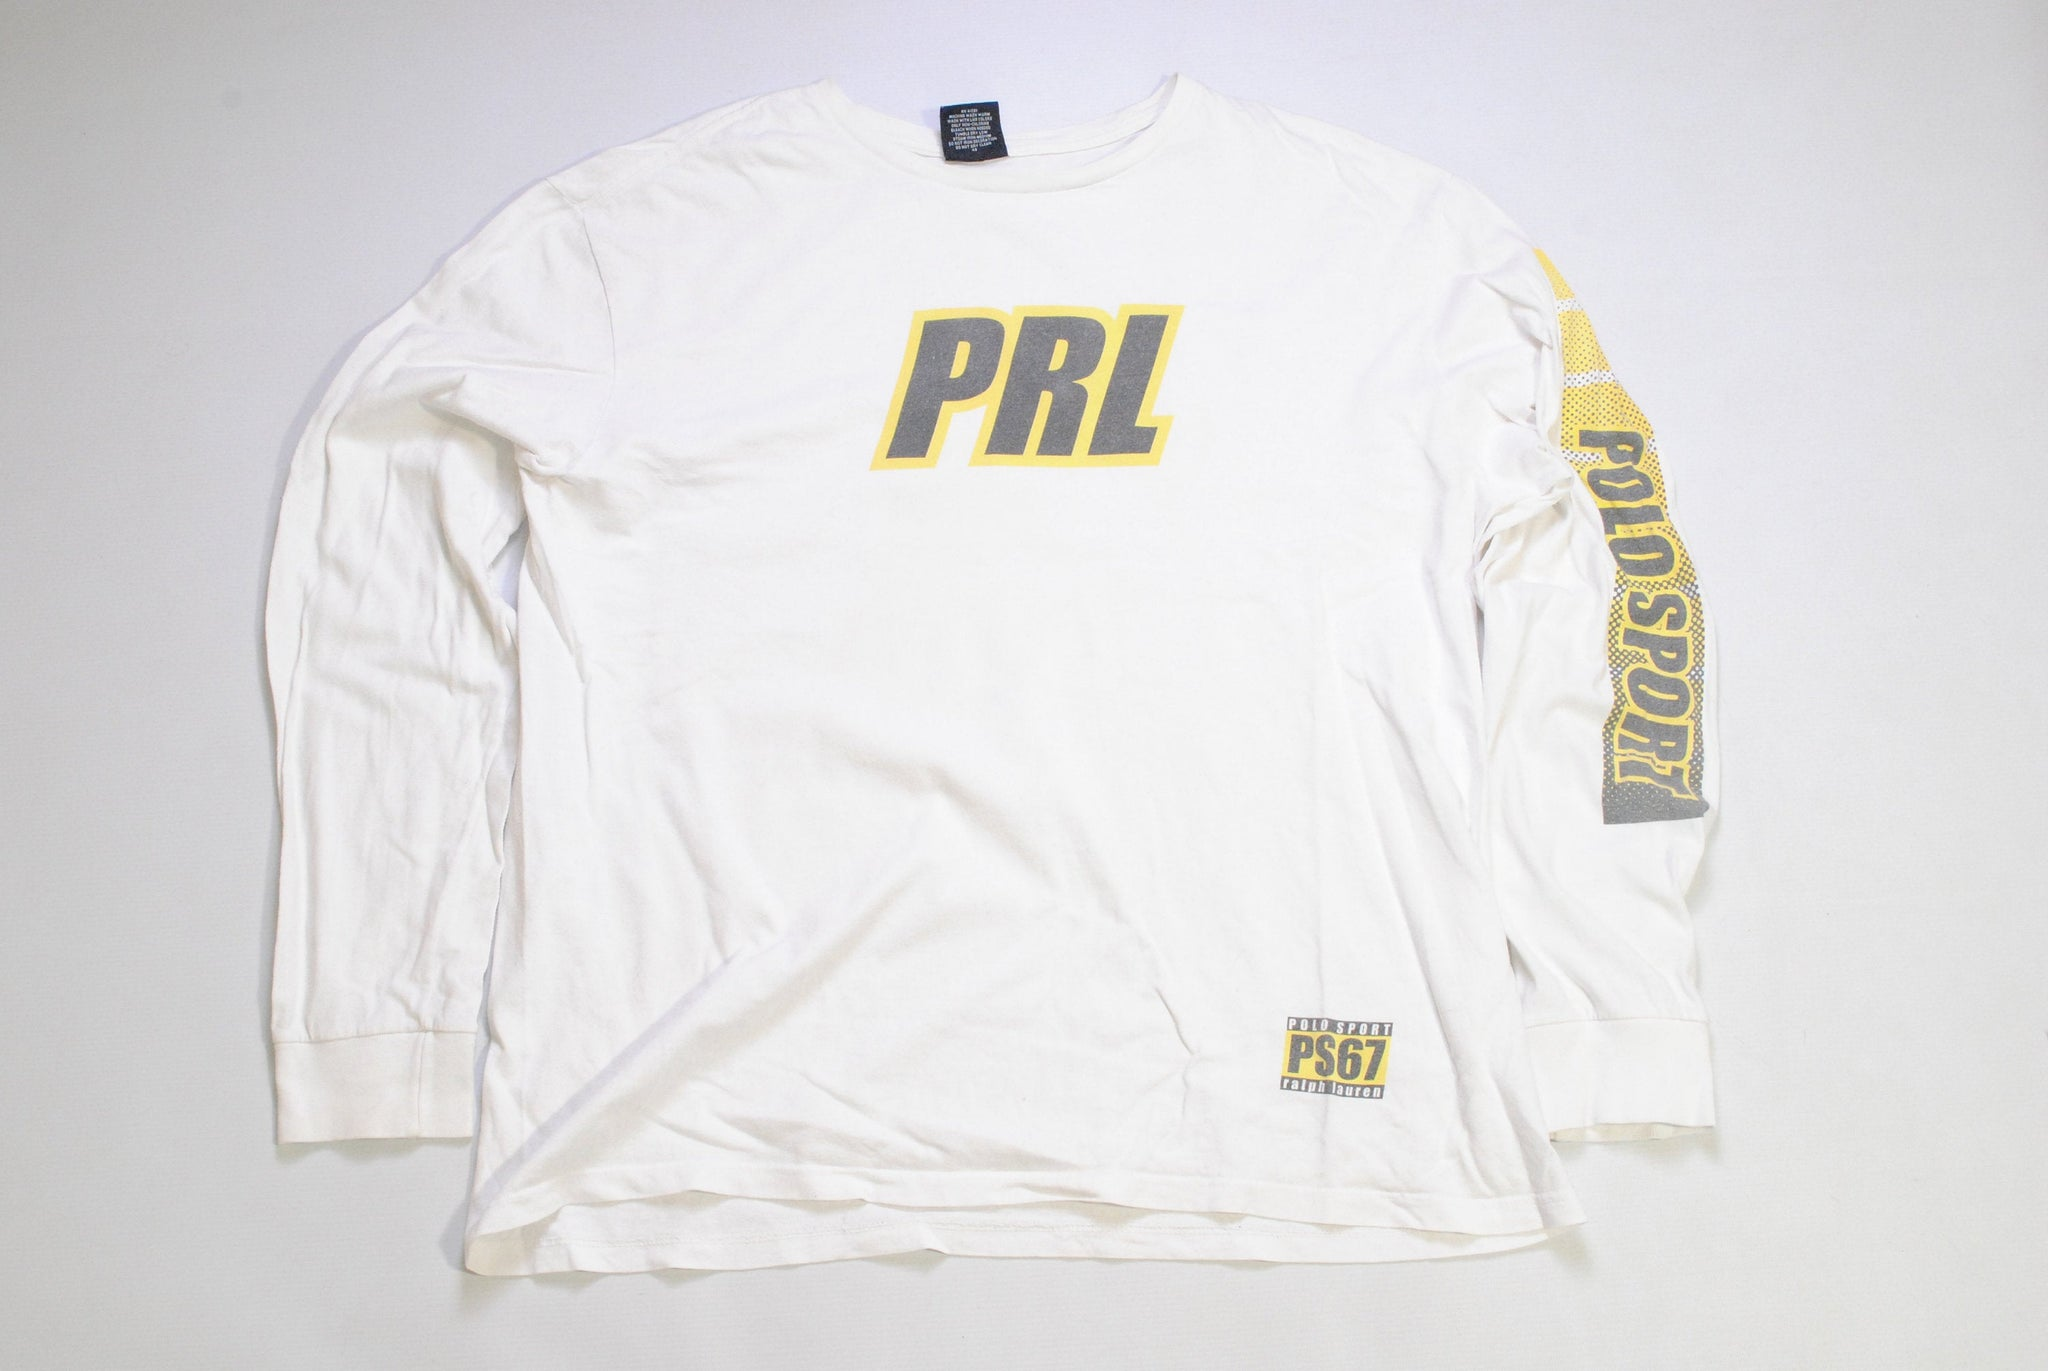 vintage POLO SPORT by Ralph Lauren PRL sweatshirt long sleeve t-shirt big logo rare shirt Retro Size L authentic light sweater 90s hipster